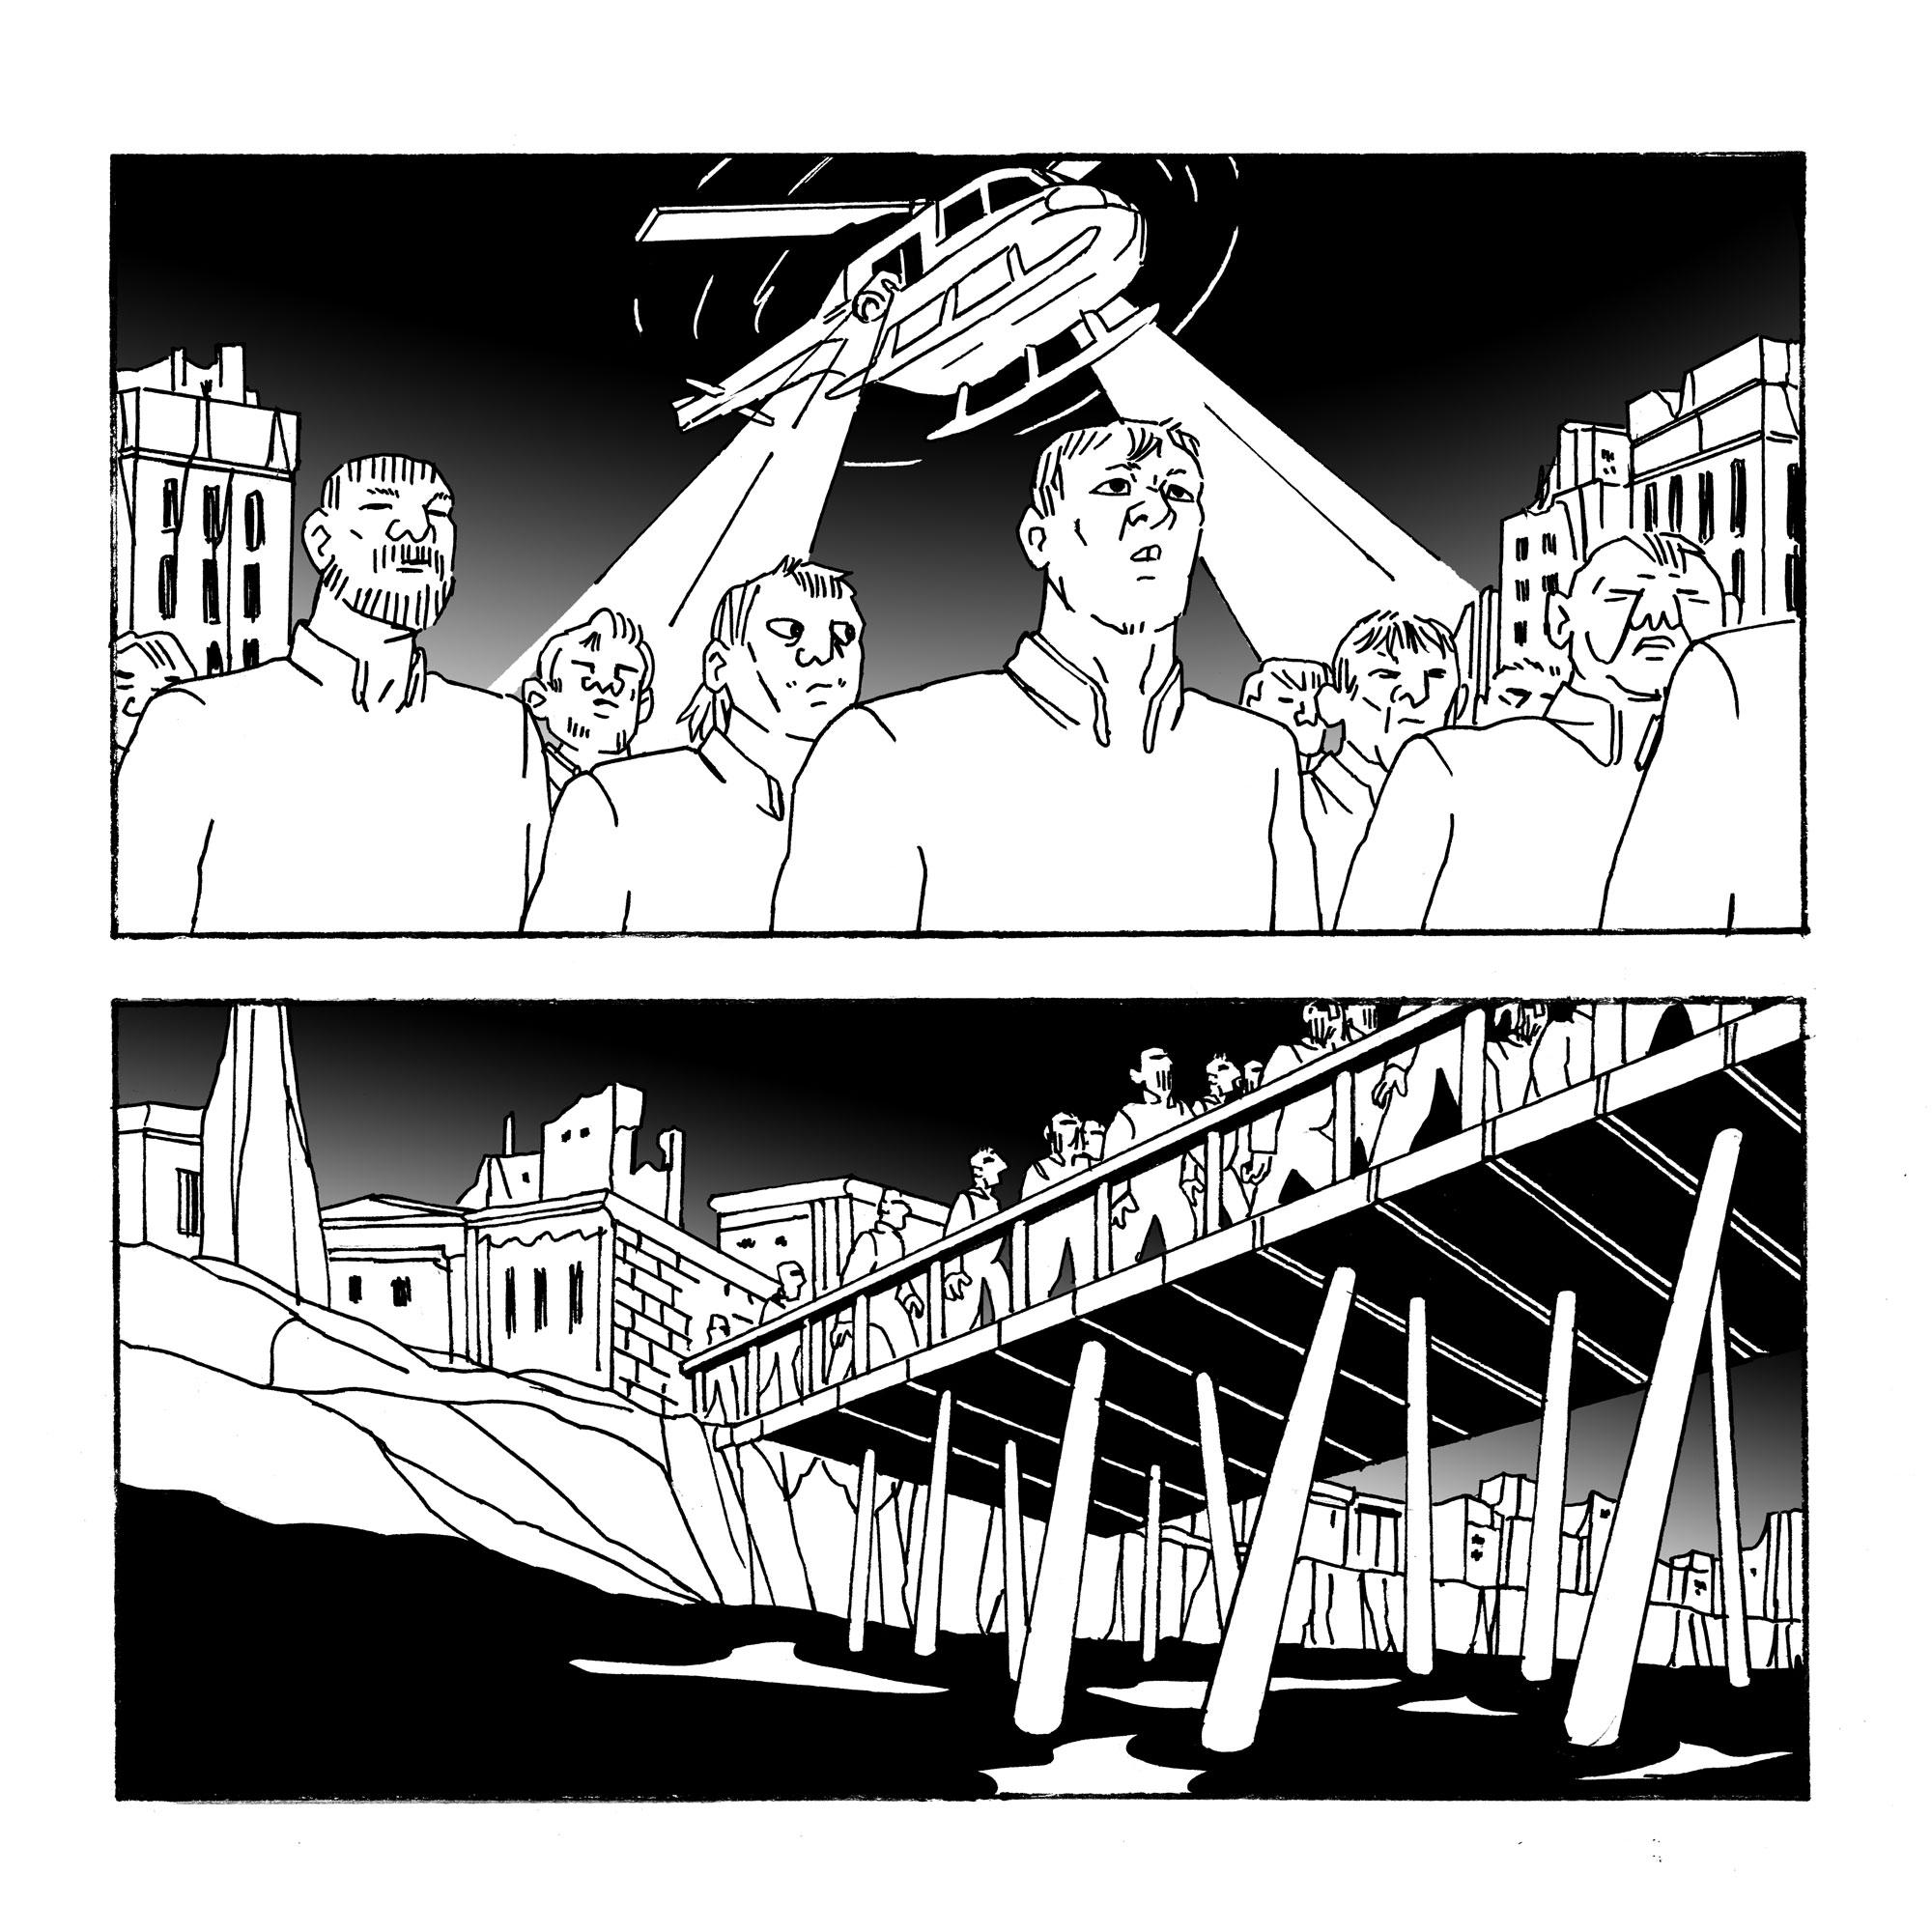 CHRIS GOOCH : Chris Gooch is a Melbourne based cartoonist. His first graphic novel,  Bottled , was published in 2017 and his second,  Under-Earth , is currently being serialised in three parts over 2019.